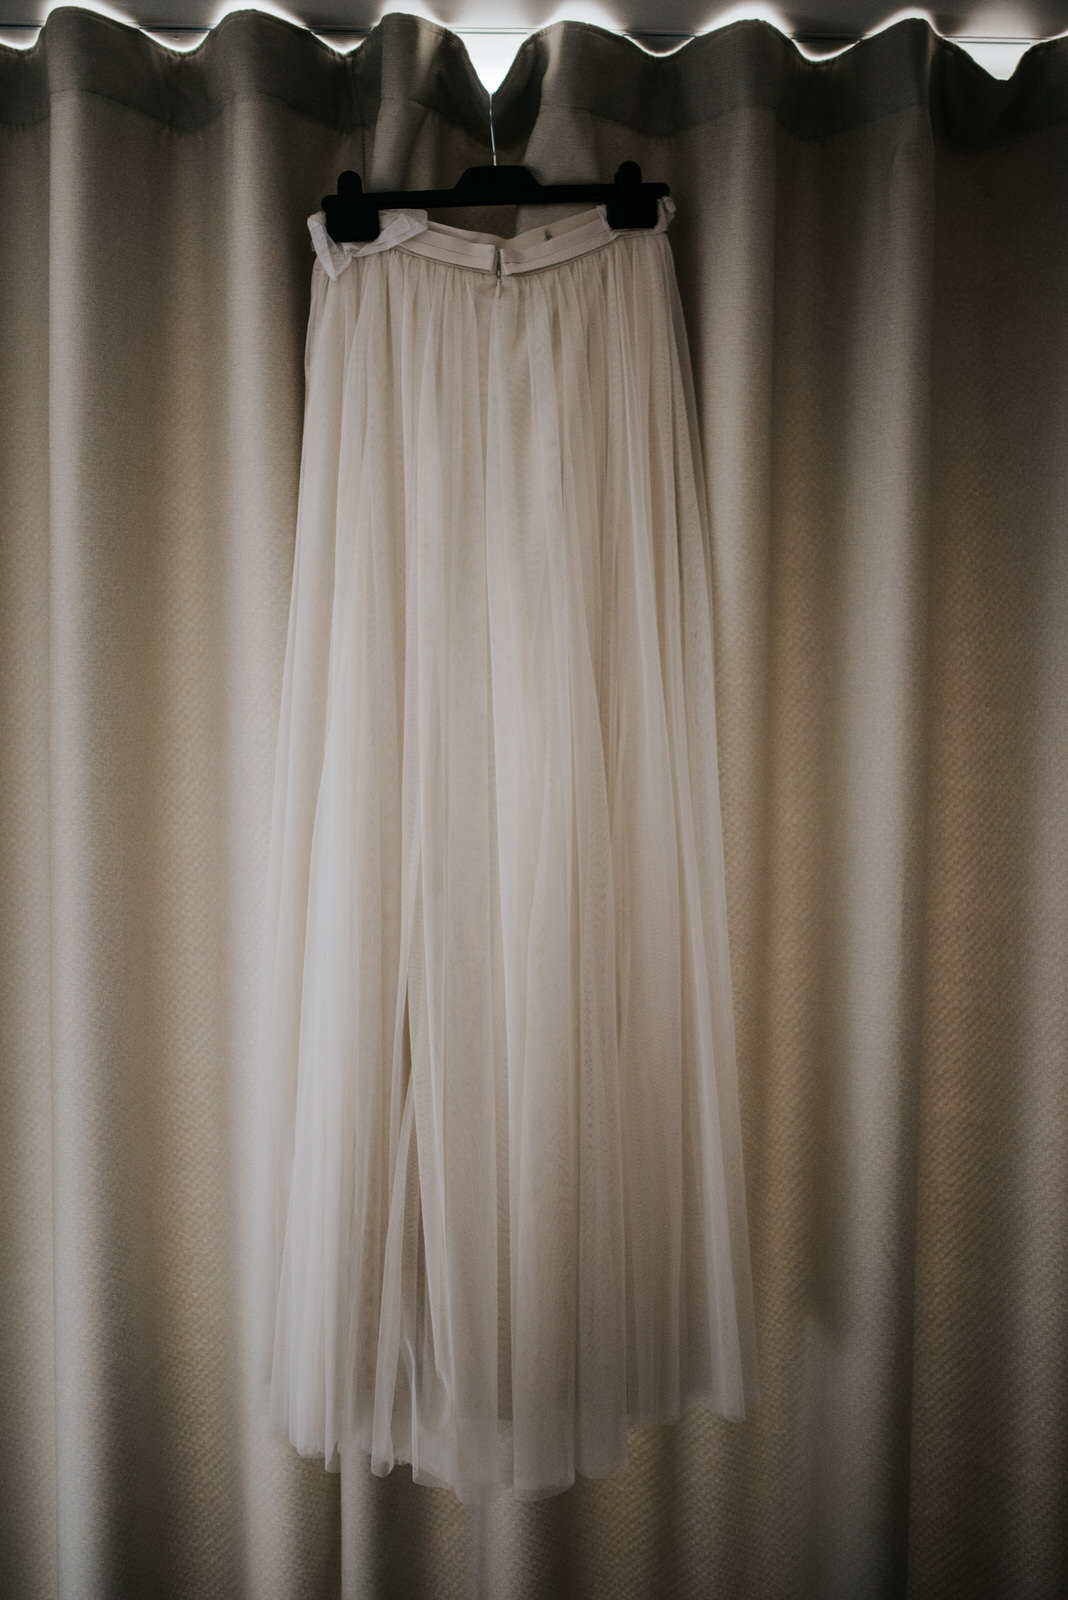 Bride's wedding skirt hanging by the window